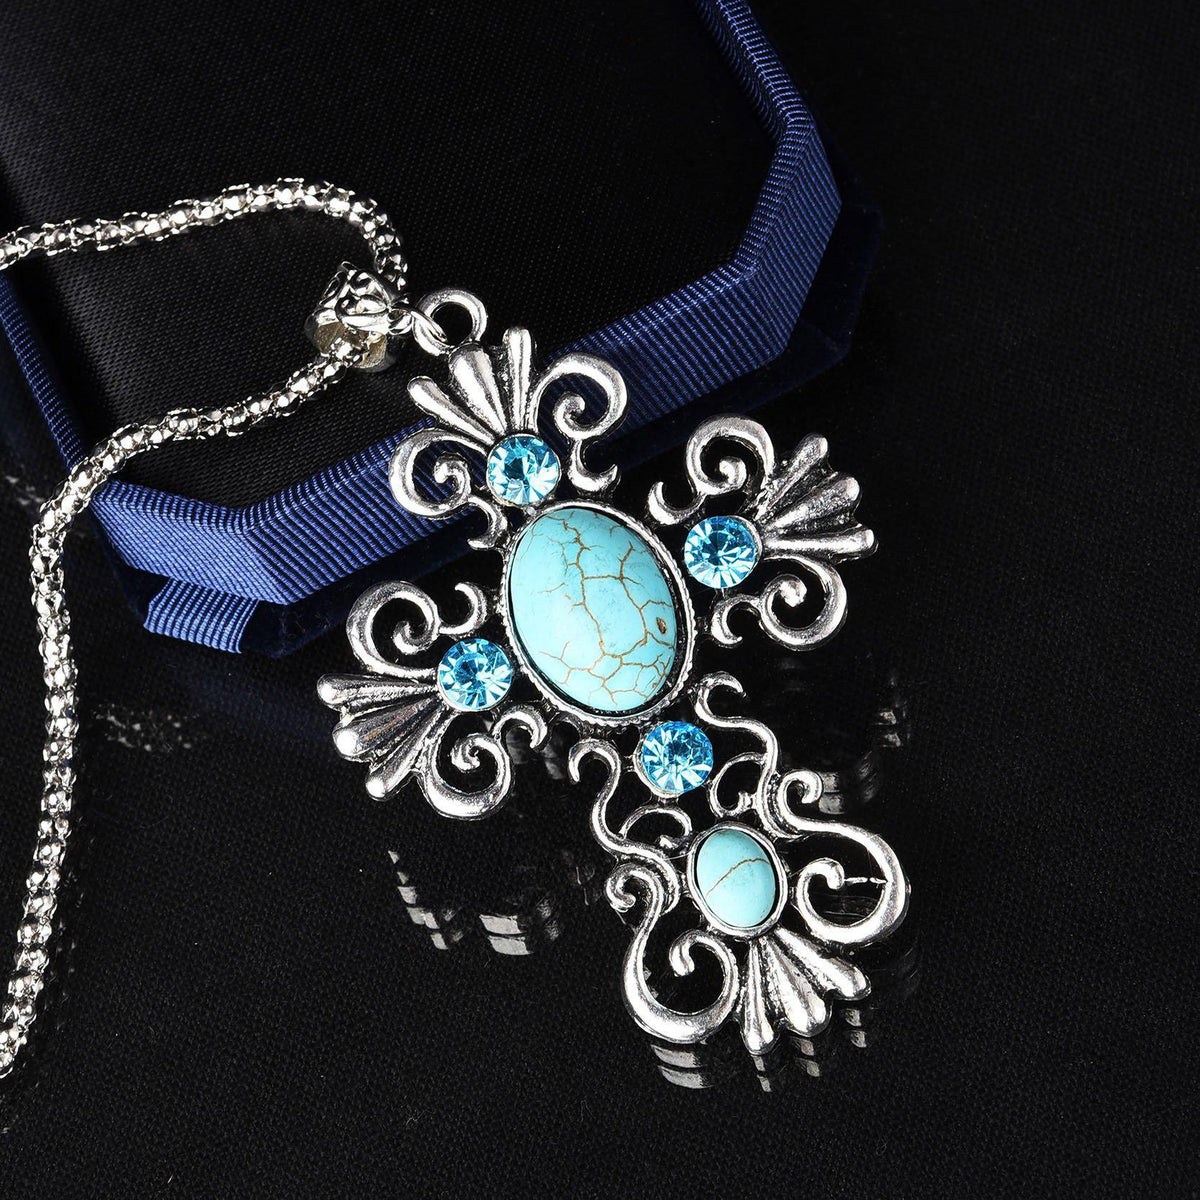 New Arrival Trendy Jewelry Bling Hollow Cross Pendant Statement Necklace Turquoise Silver Long Chain Necklace for Women-NECKLACES-SheSimplyShops